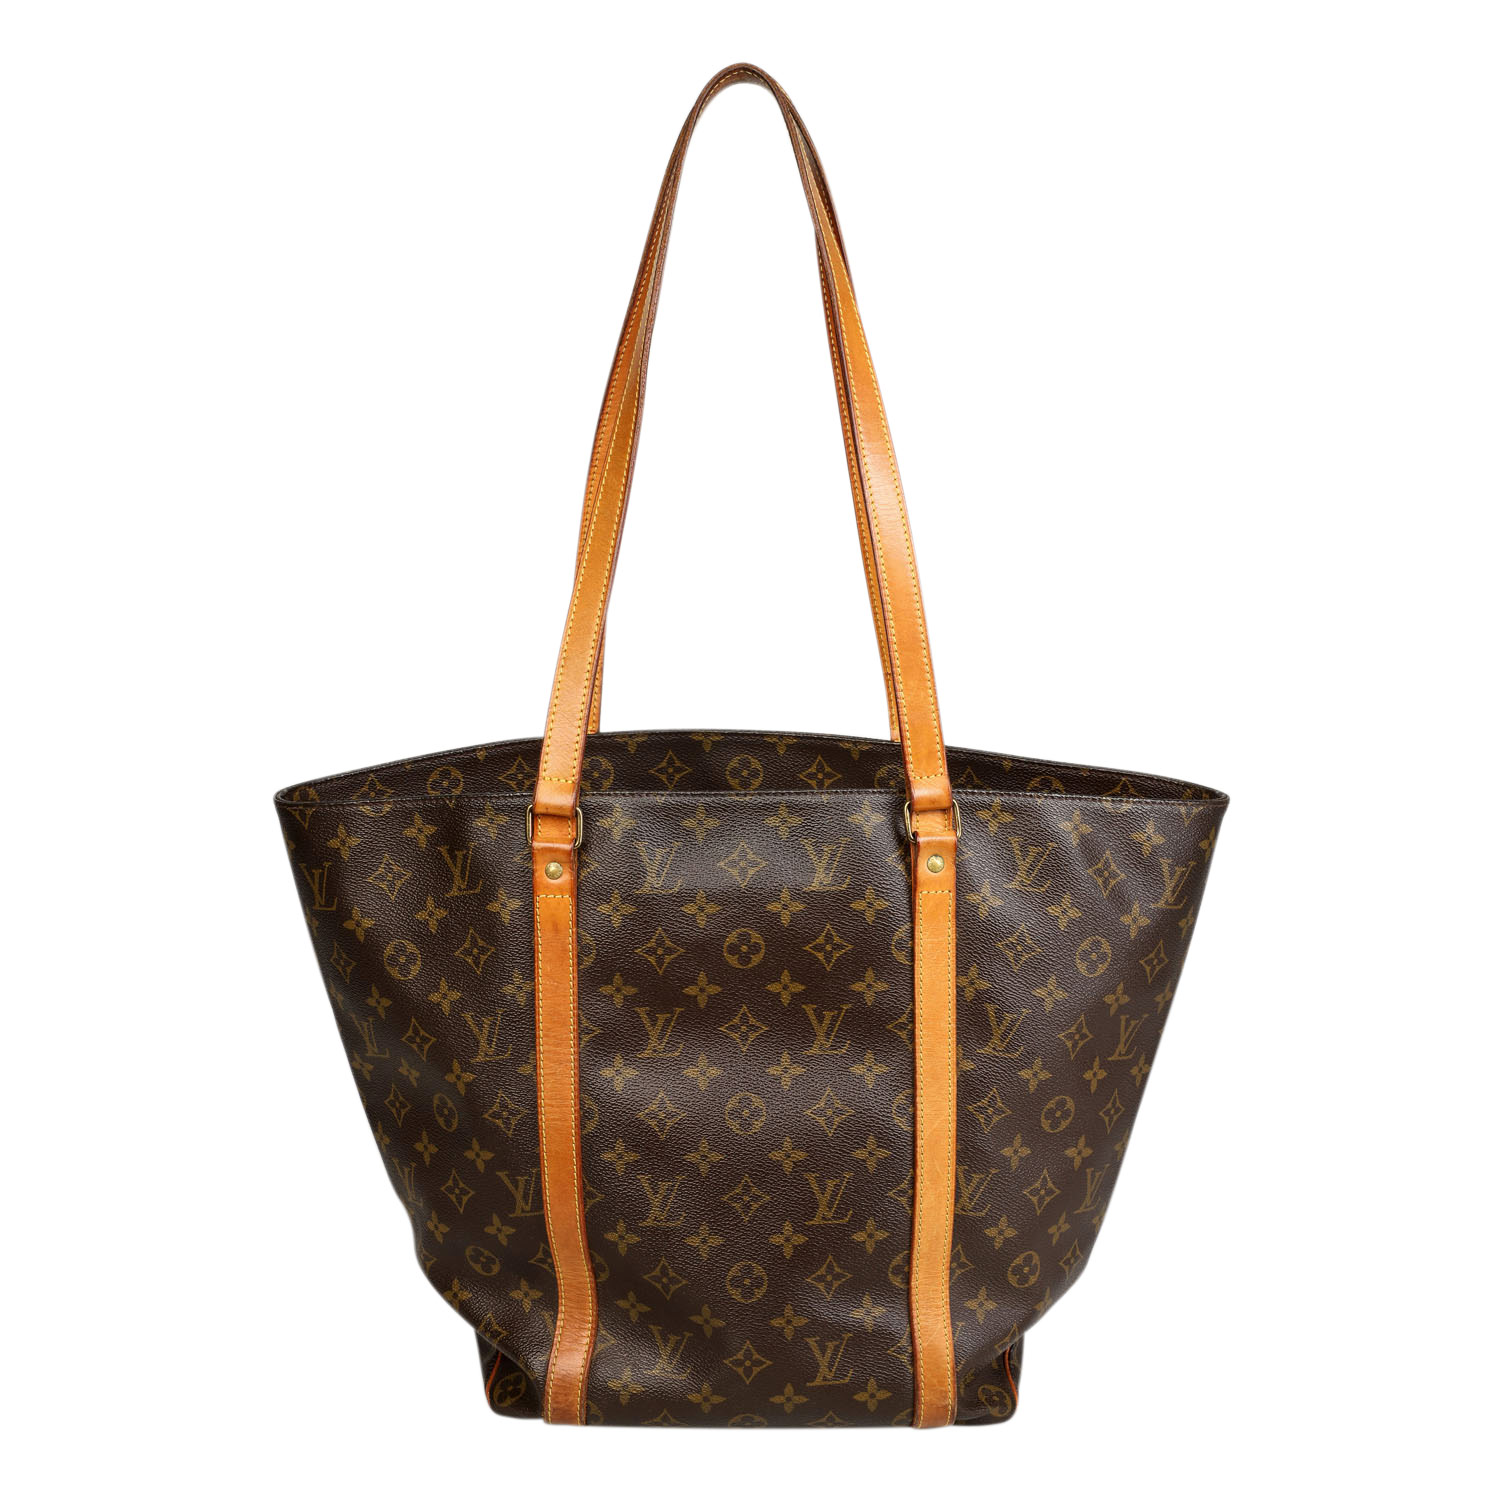 Lot 13 - LOUIS VUITTON VINTAGE Shoppertasche.Monogram Canvas Serie mit Rindsleder-Details, Doppelhenkel und